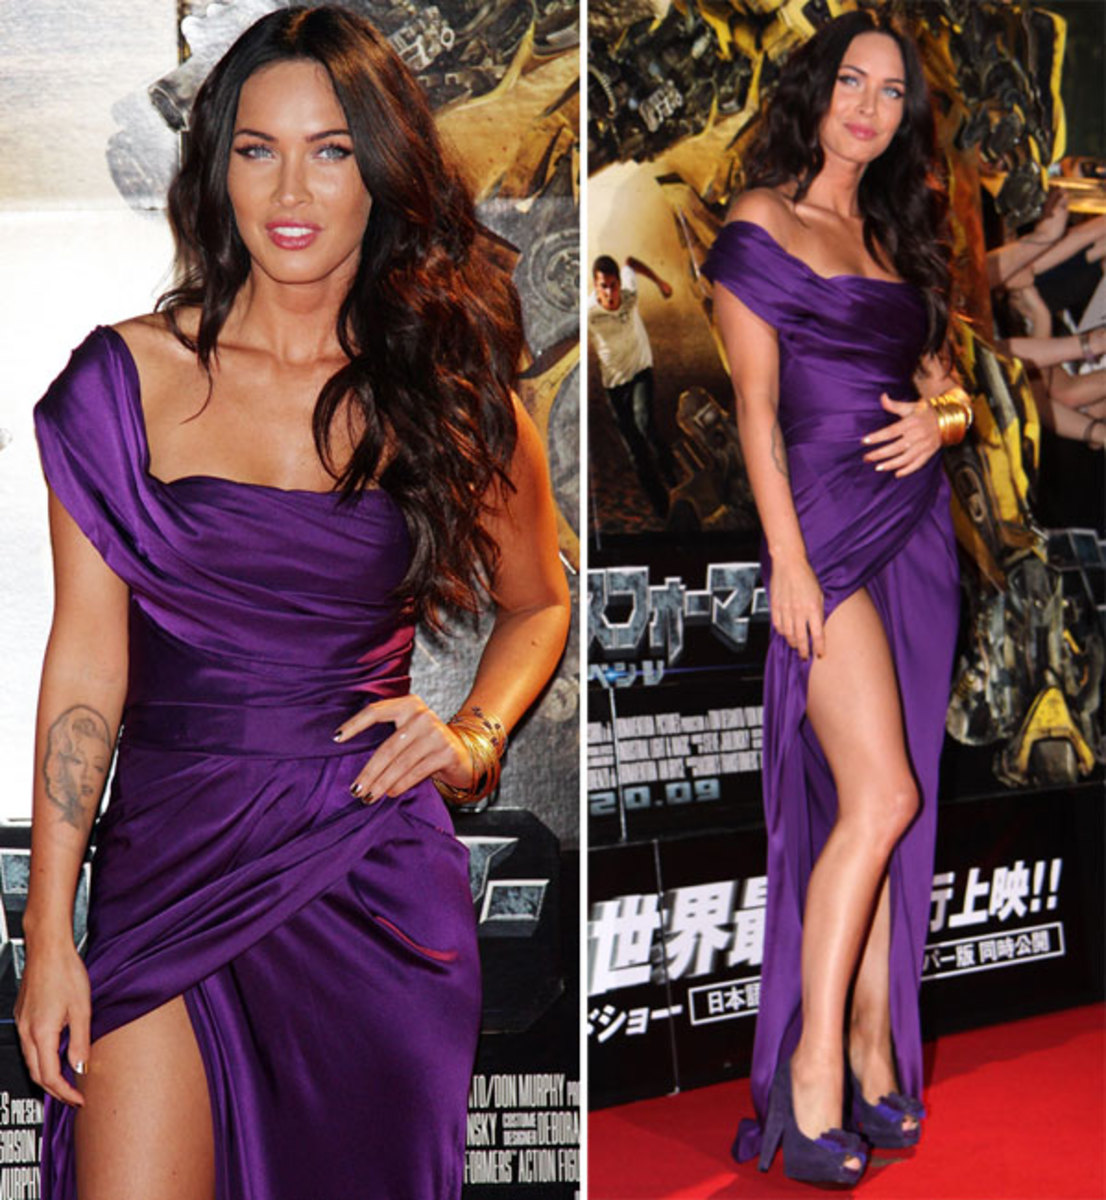 Megan Fox in a purple dress with a revealing slit and high heels